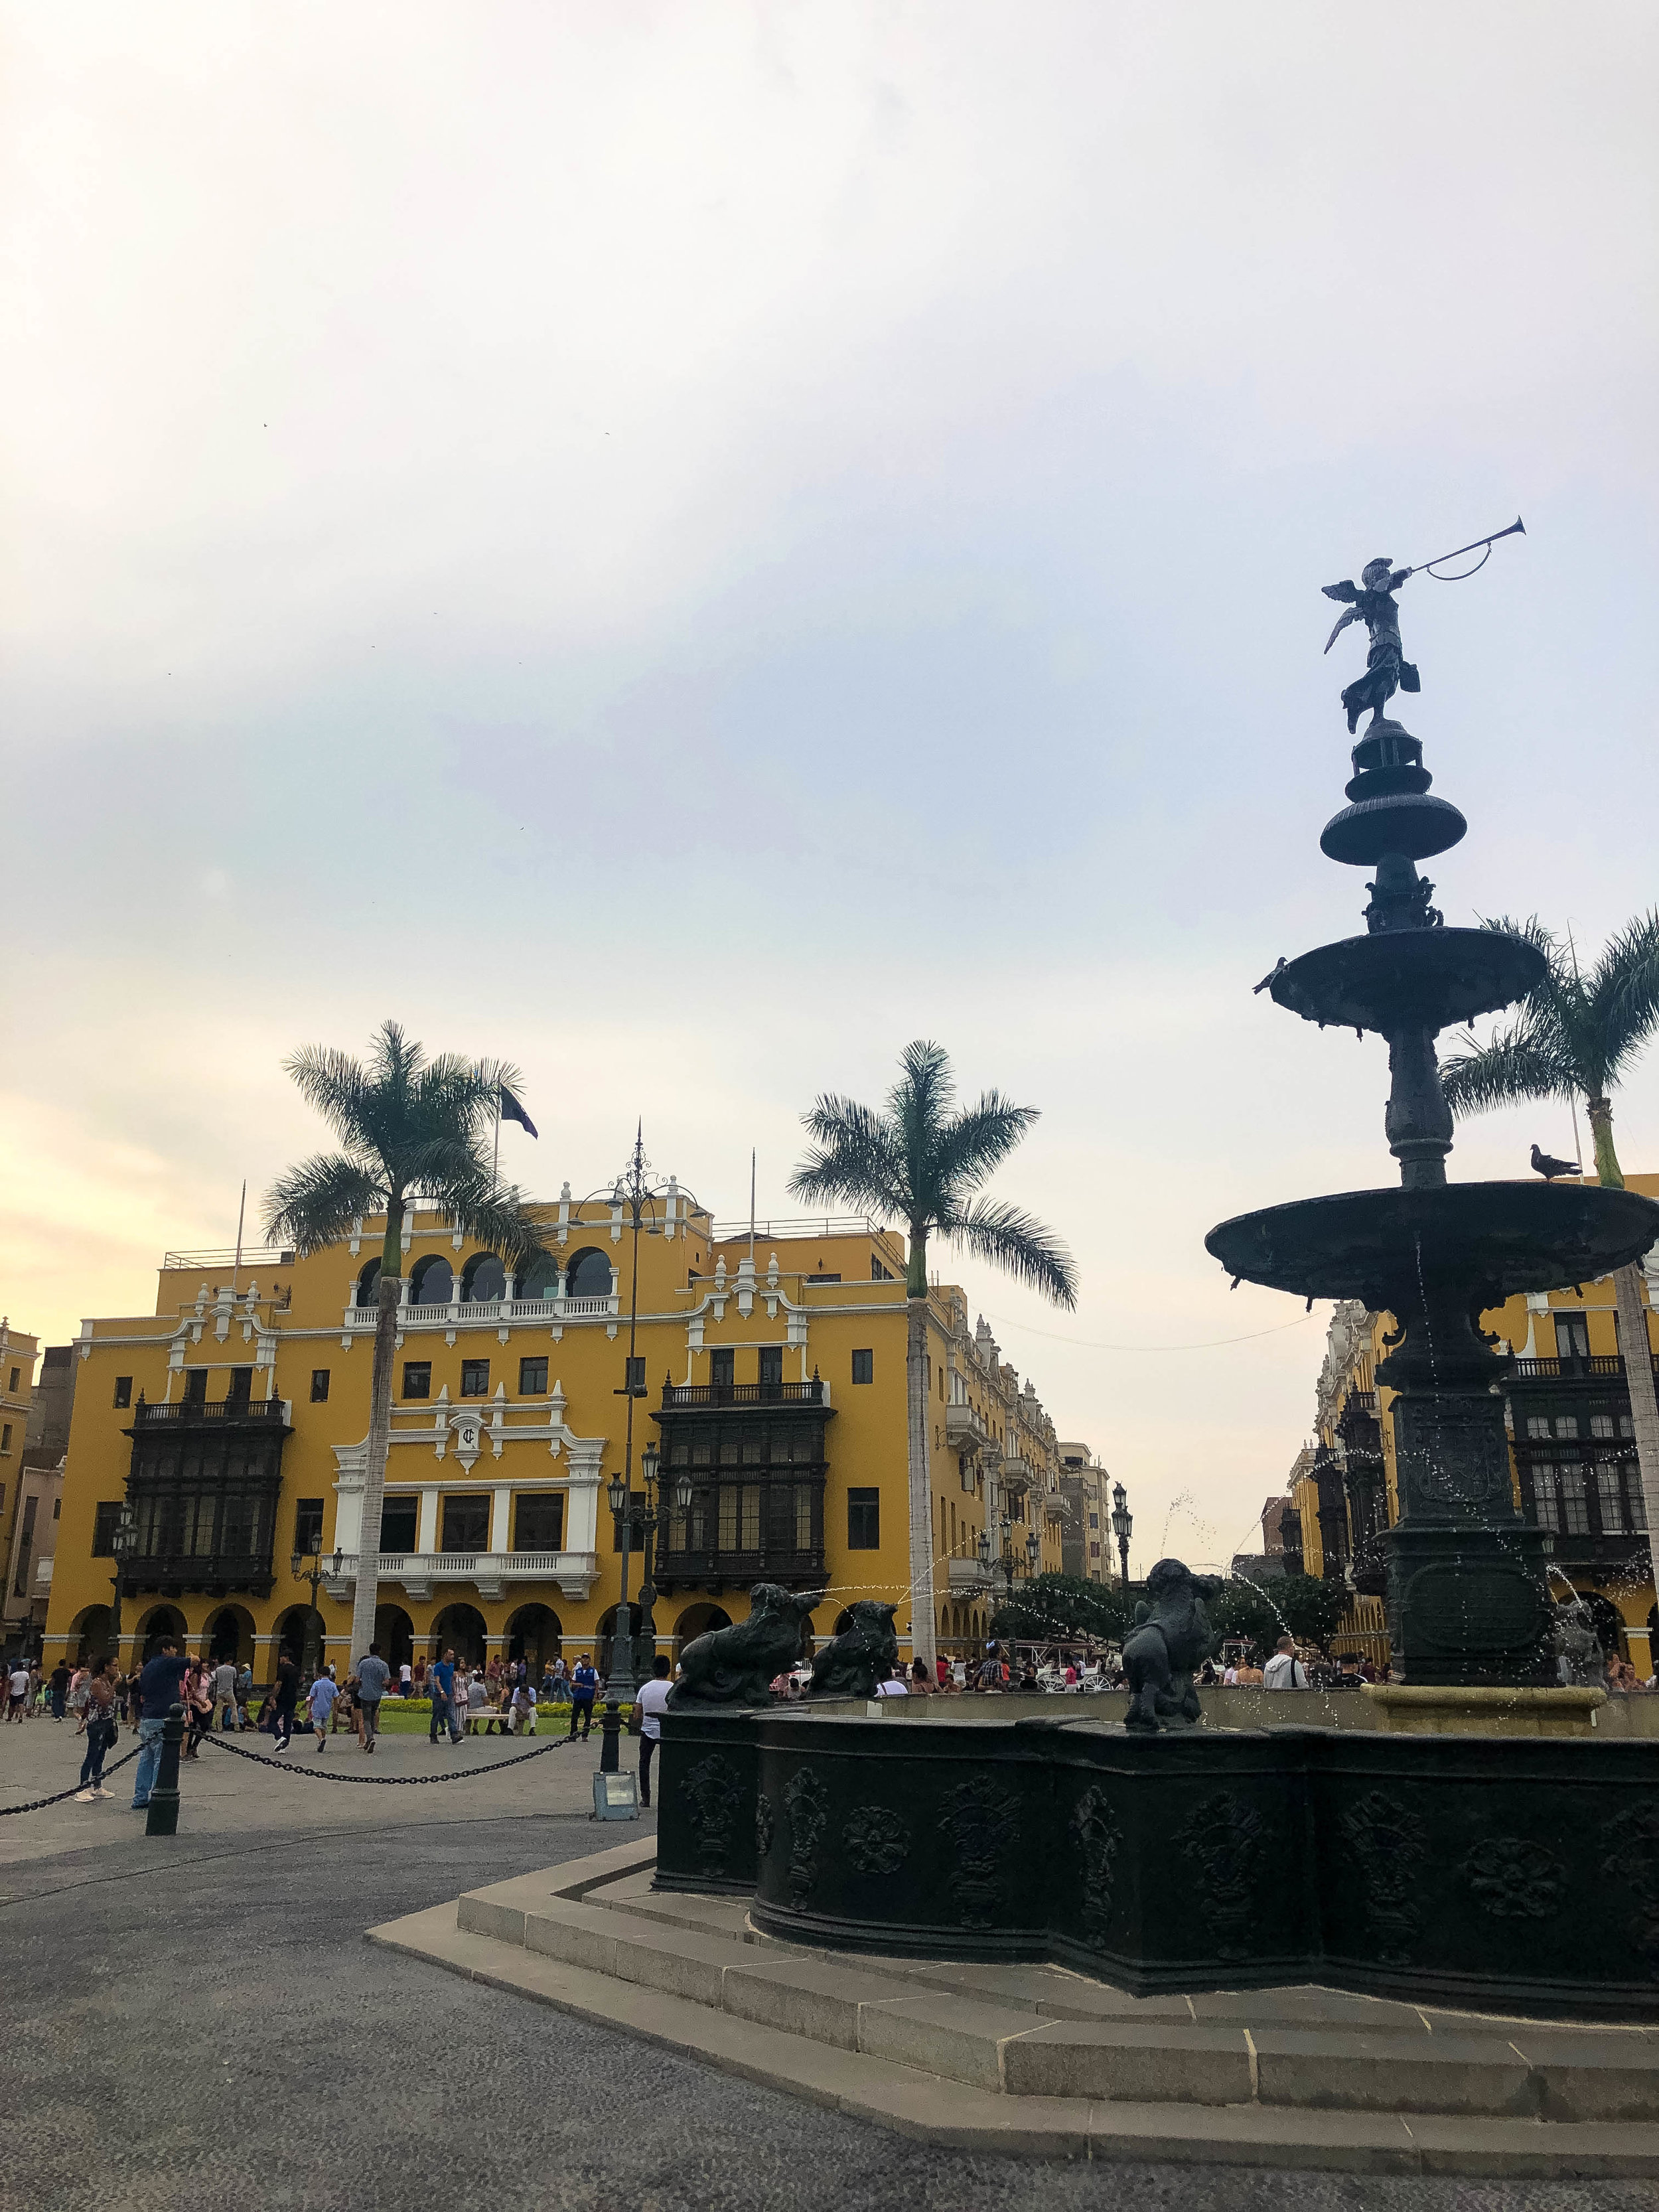 Beautiful historic buildings and fountains in the Plaza De Armas